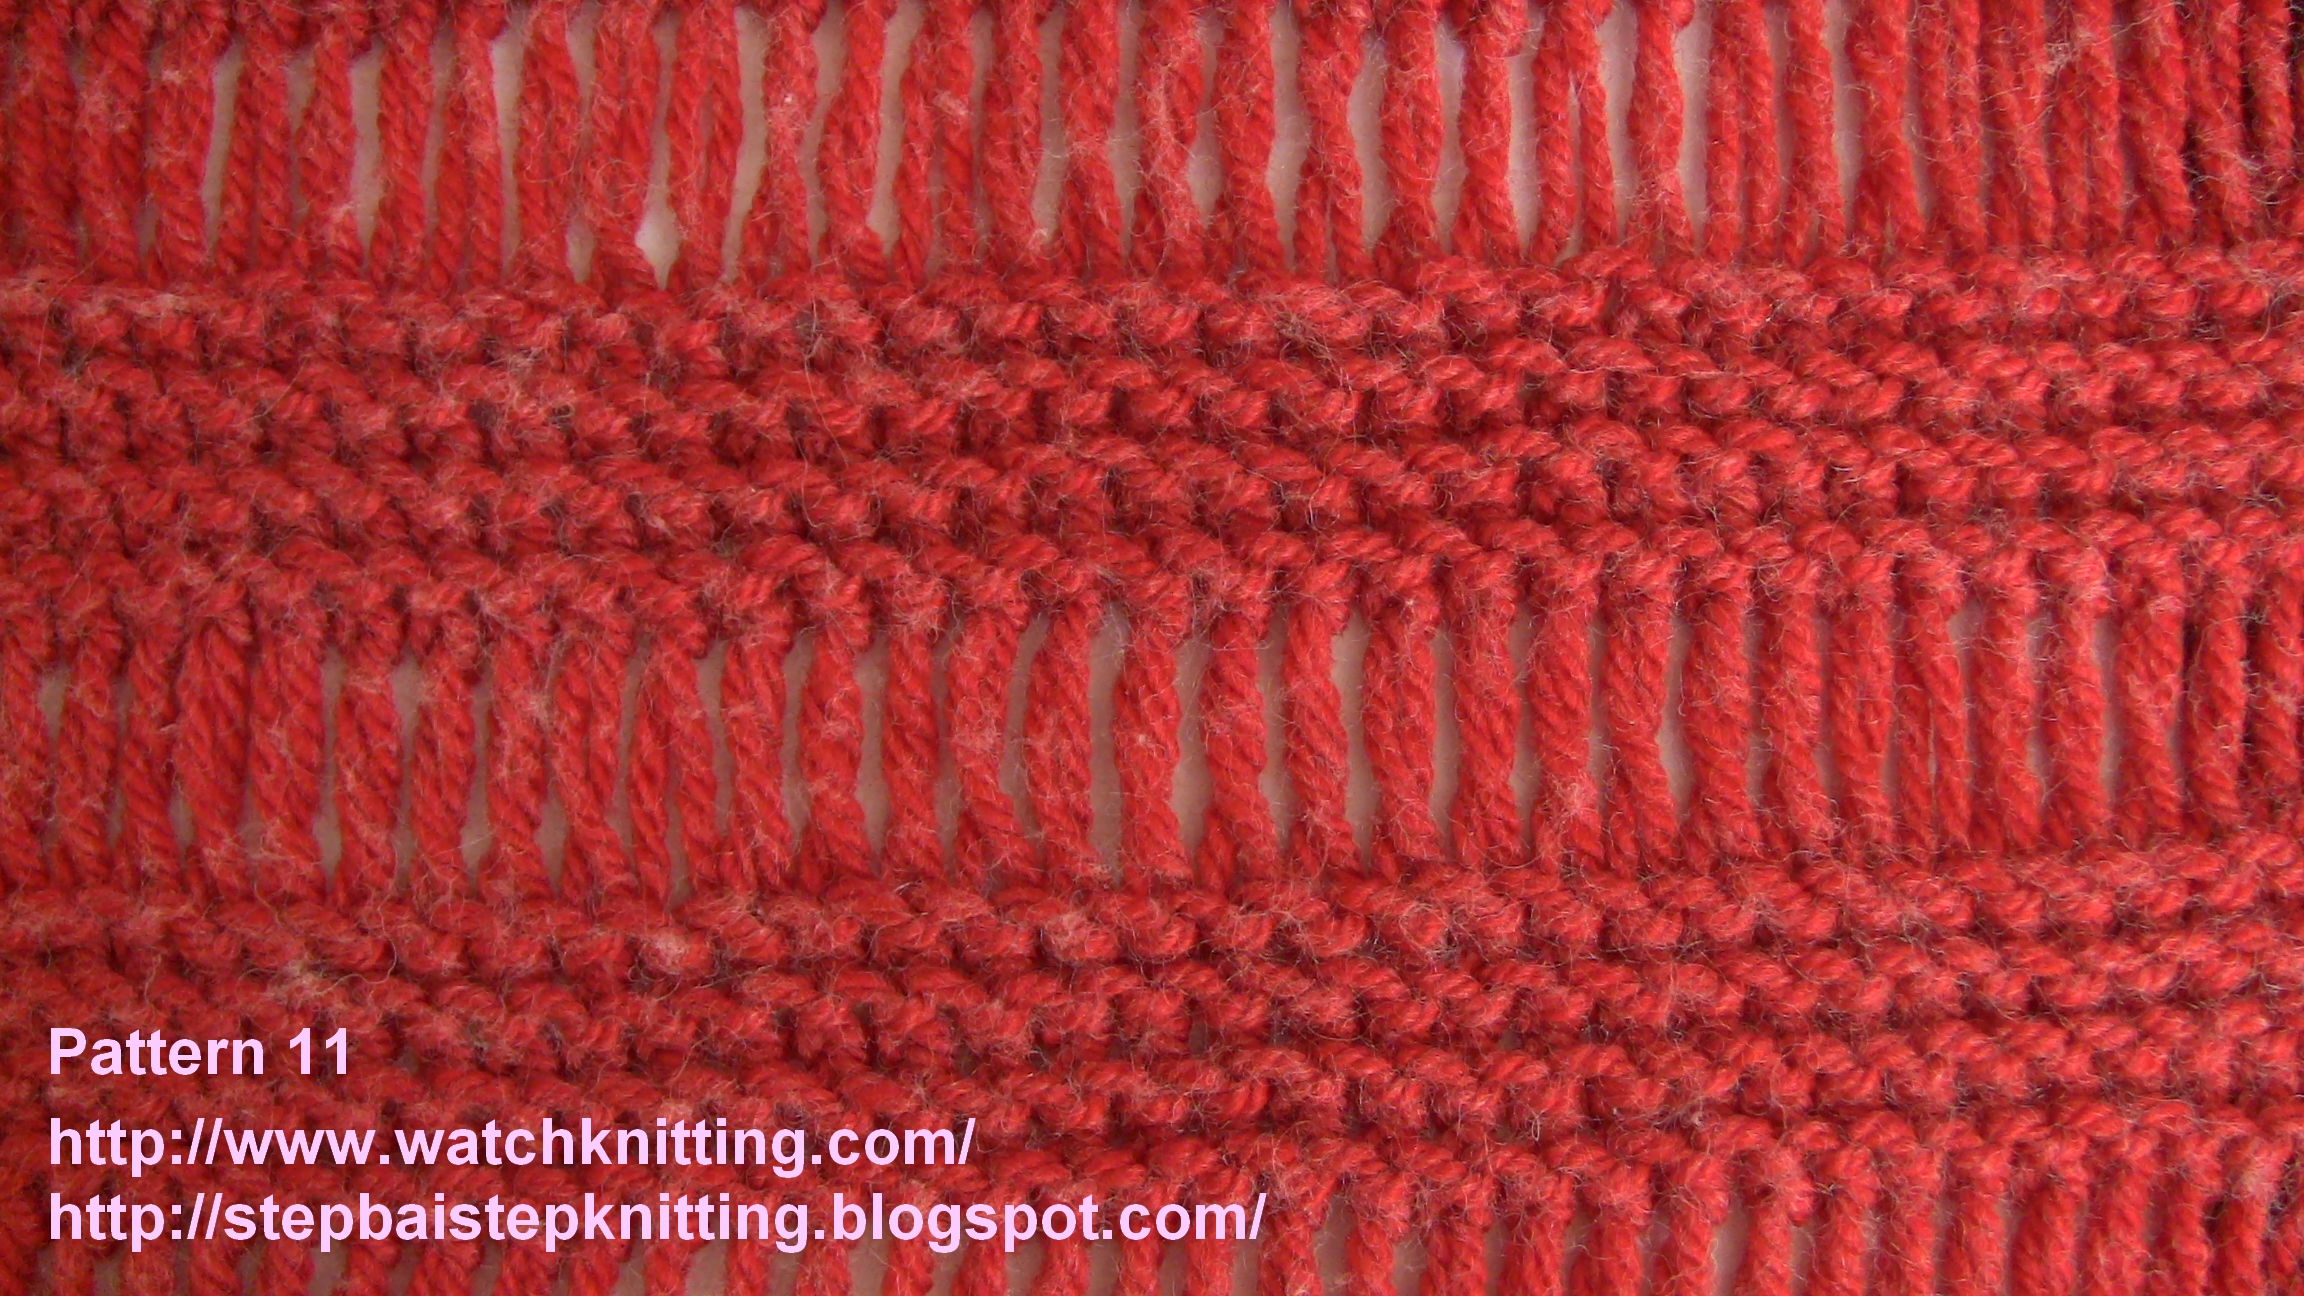 Knitting Instructions : ... stitches row 1 knit all the stitches row 2 knit all the stitches row 3